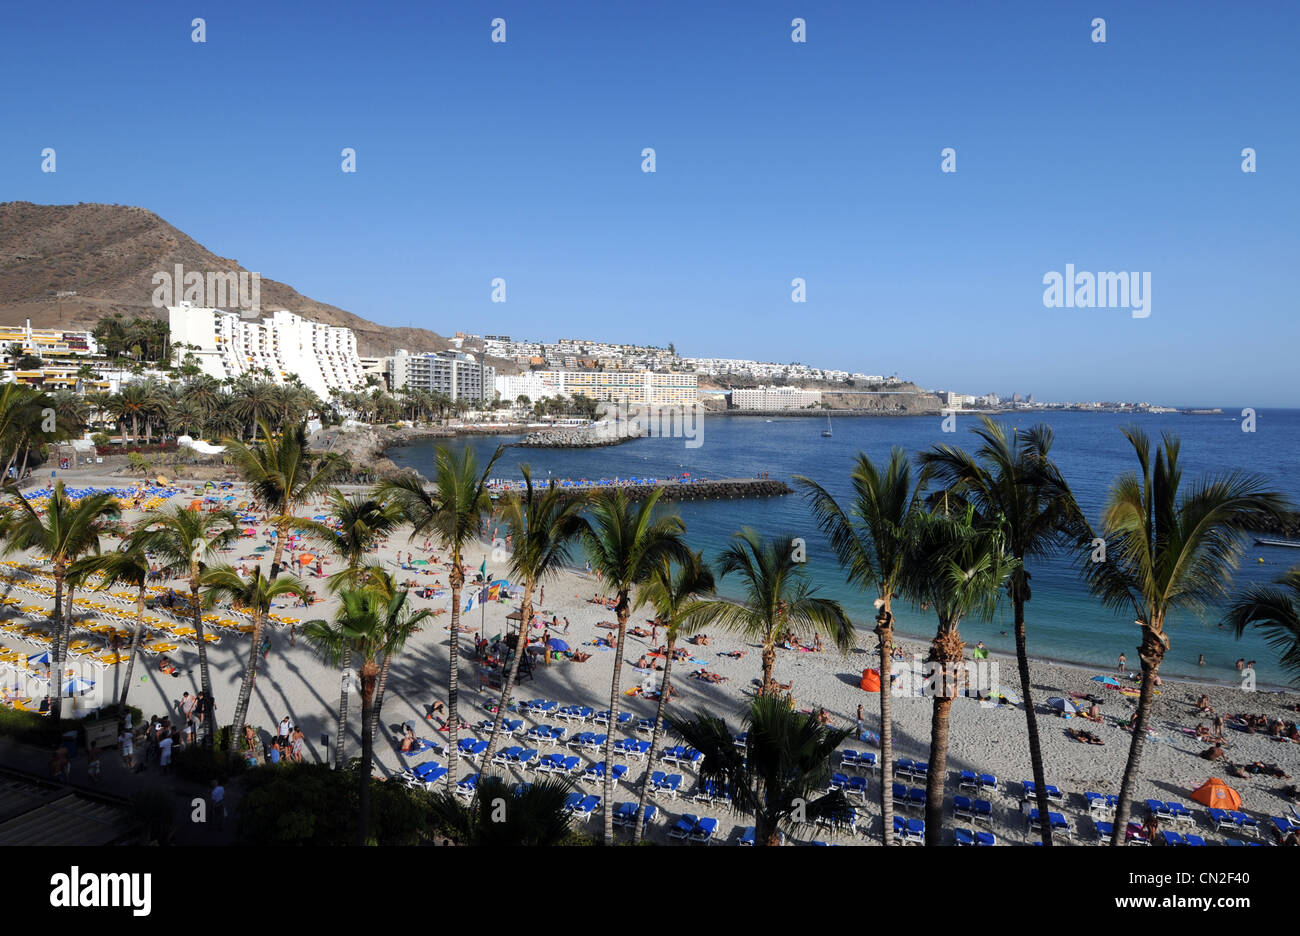 Anfi Del Mar Resort and beach, Gran Canaria, Canary Islands - Stock Image